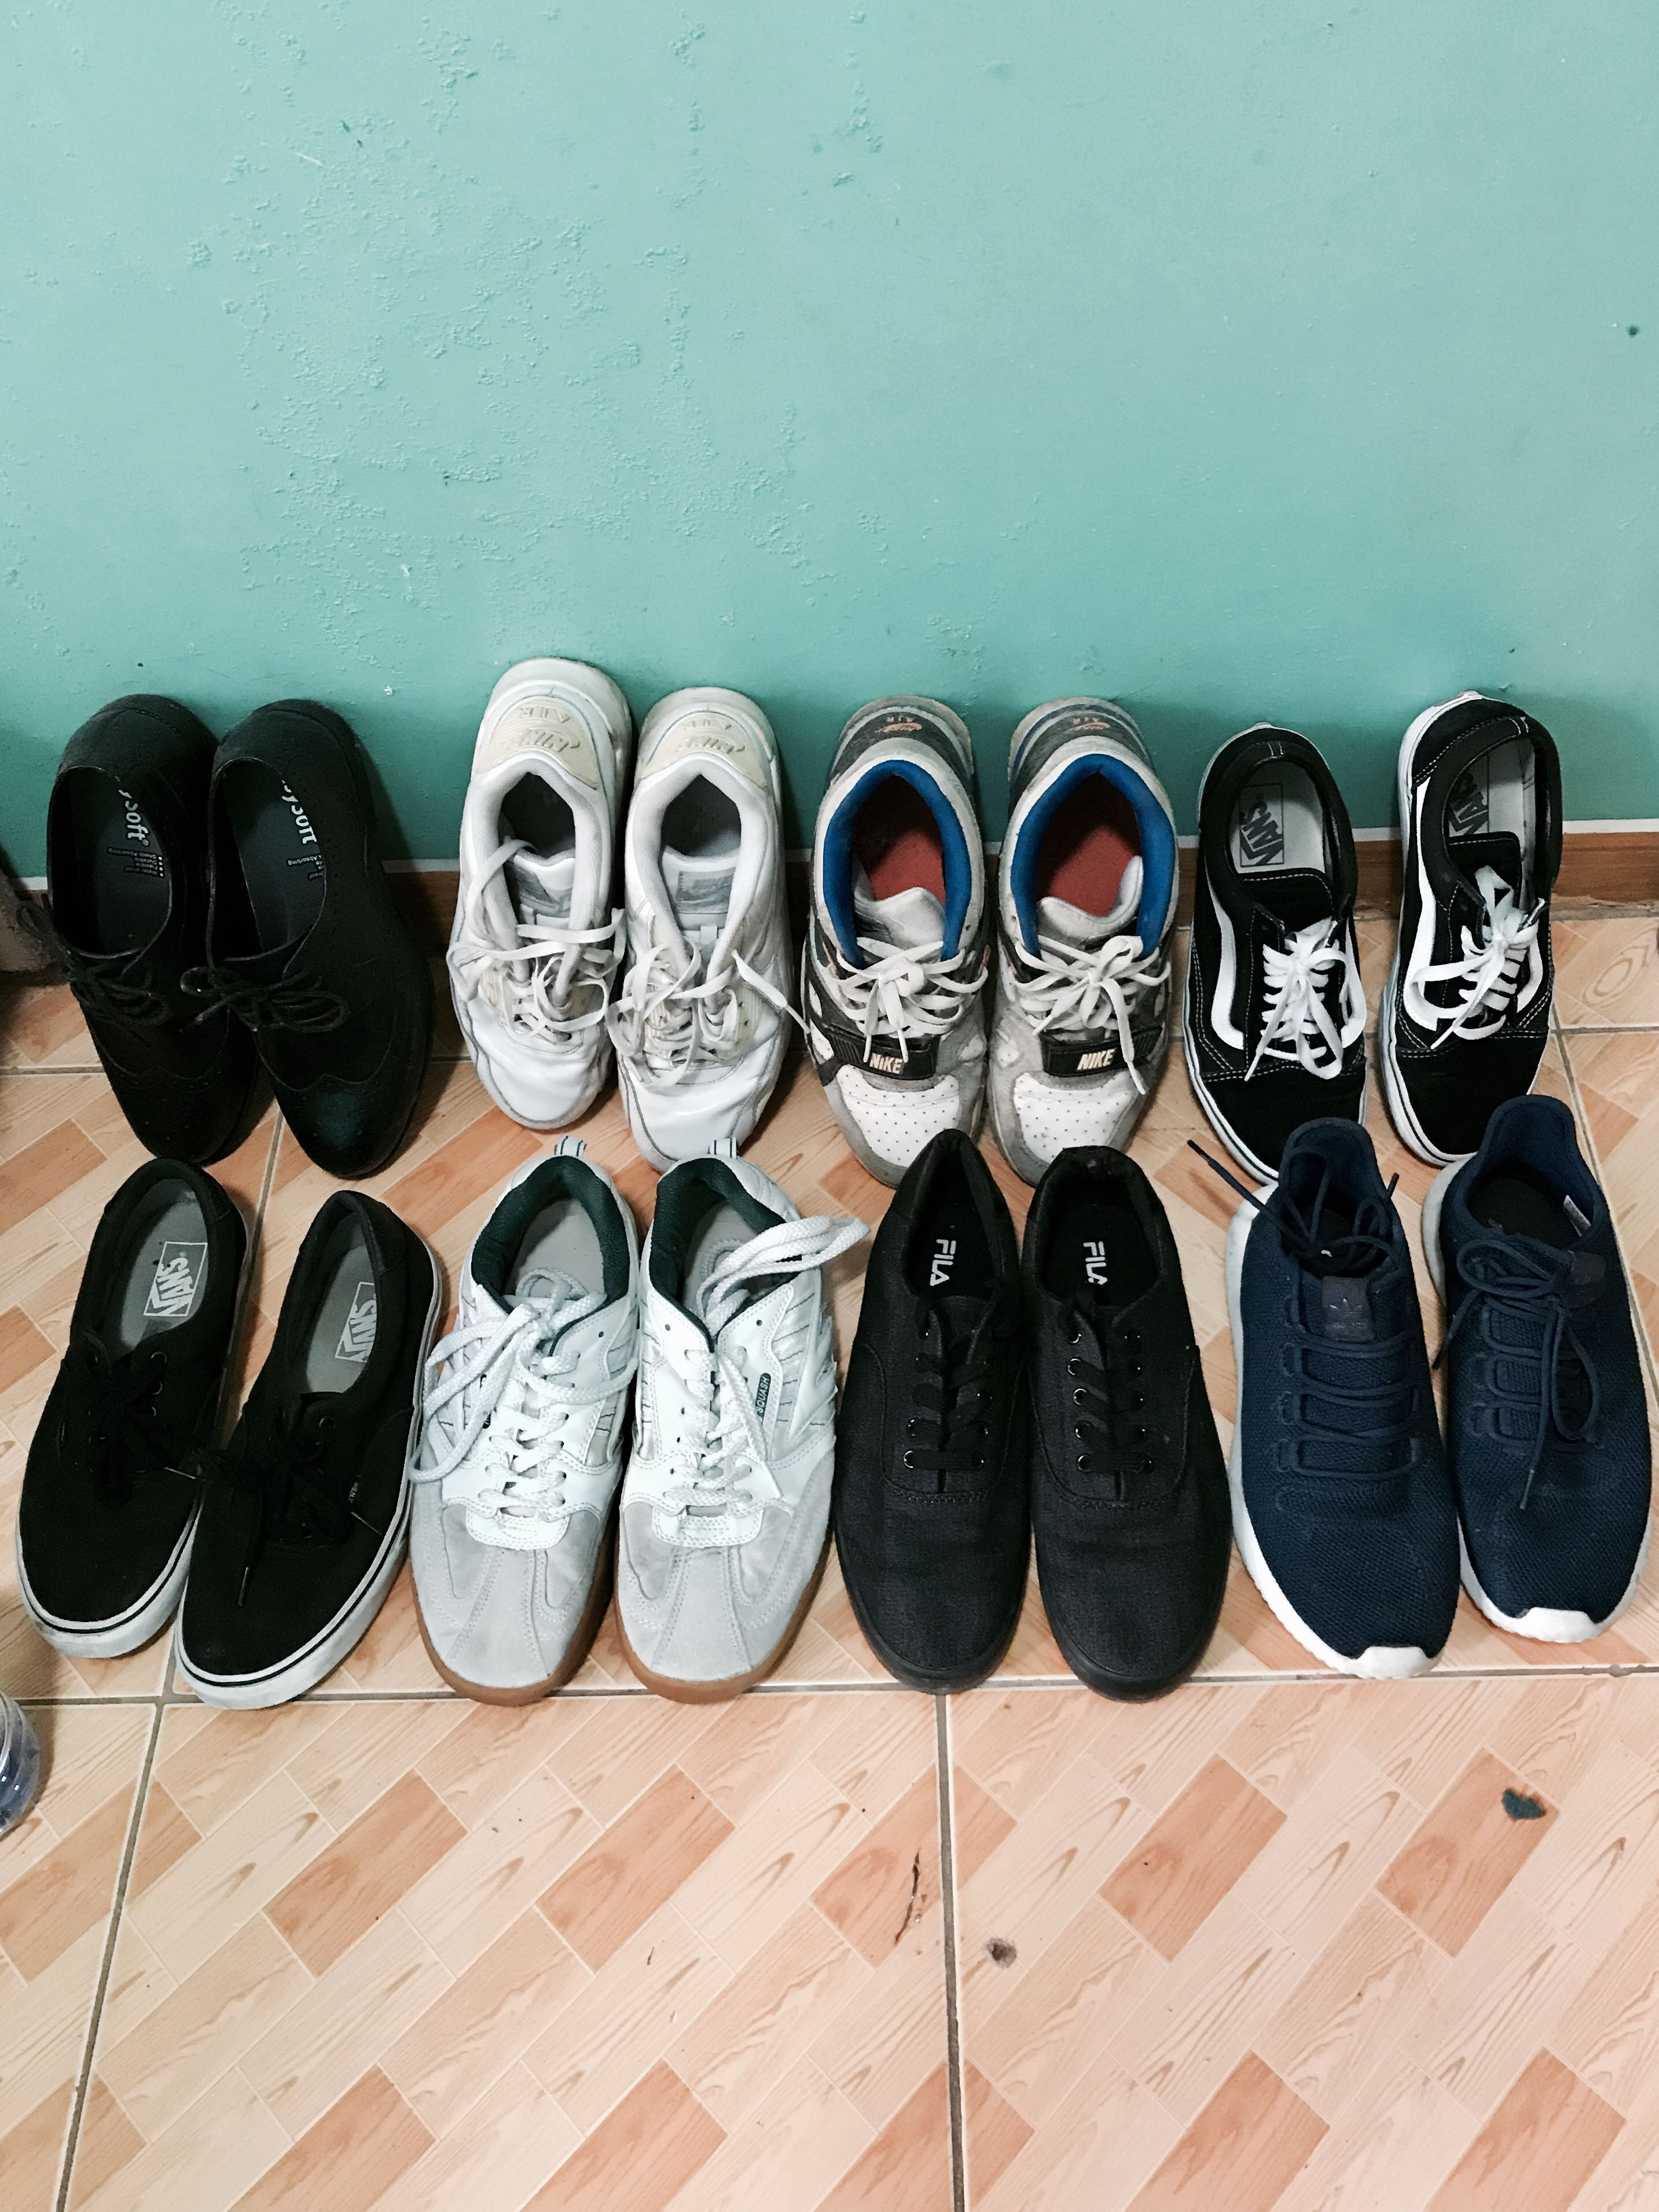 f404f87f7a Home · Men s Fashion · Footwear · Sneakers. photo photo photo photo